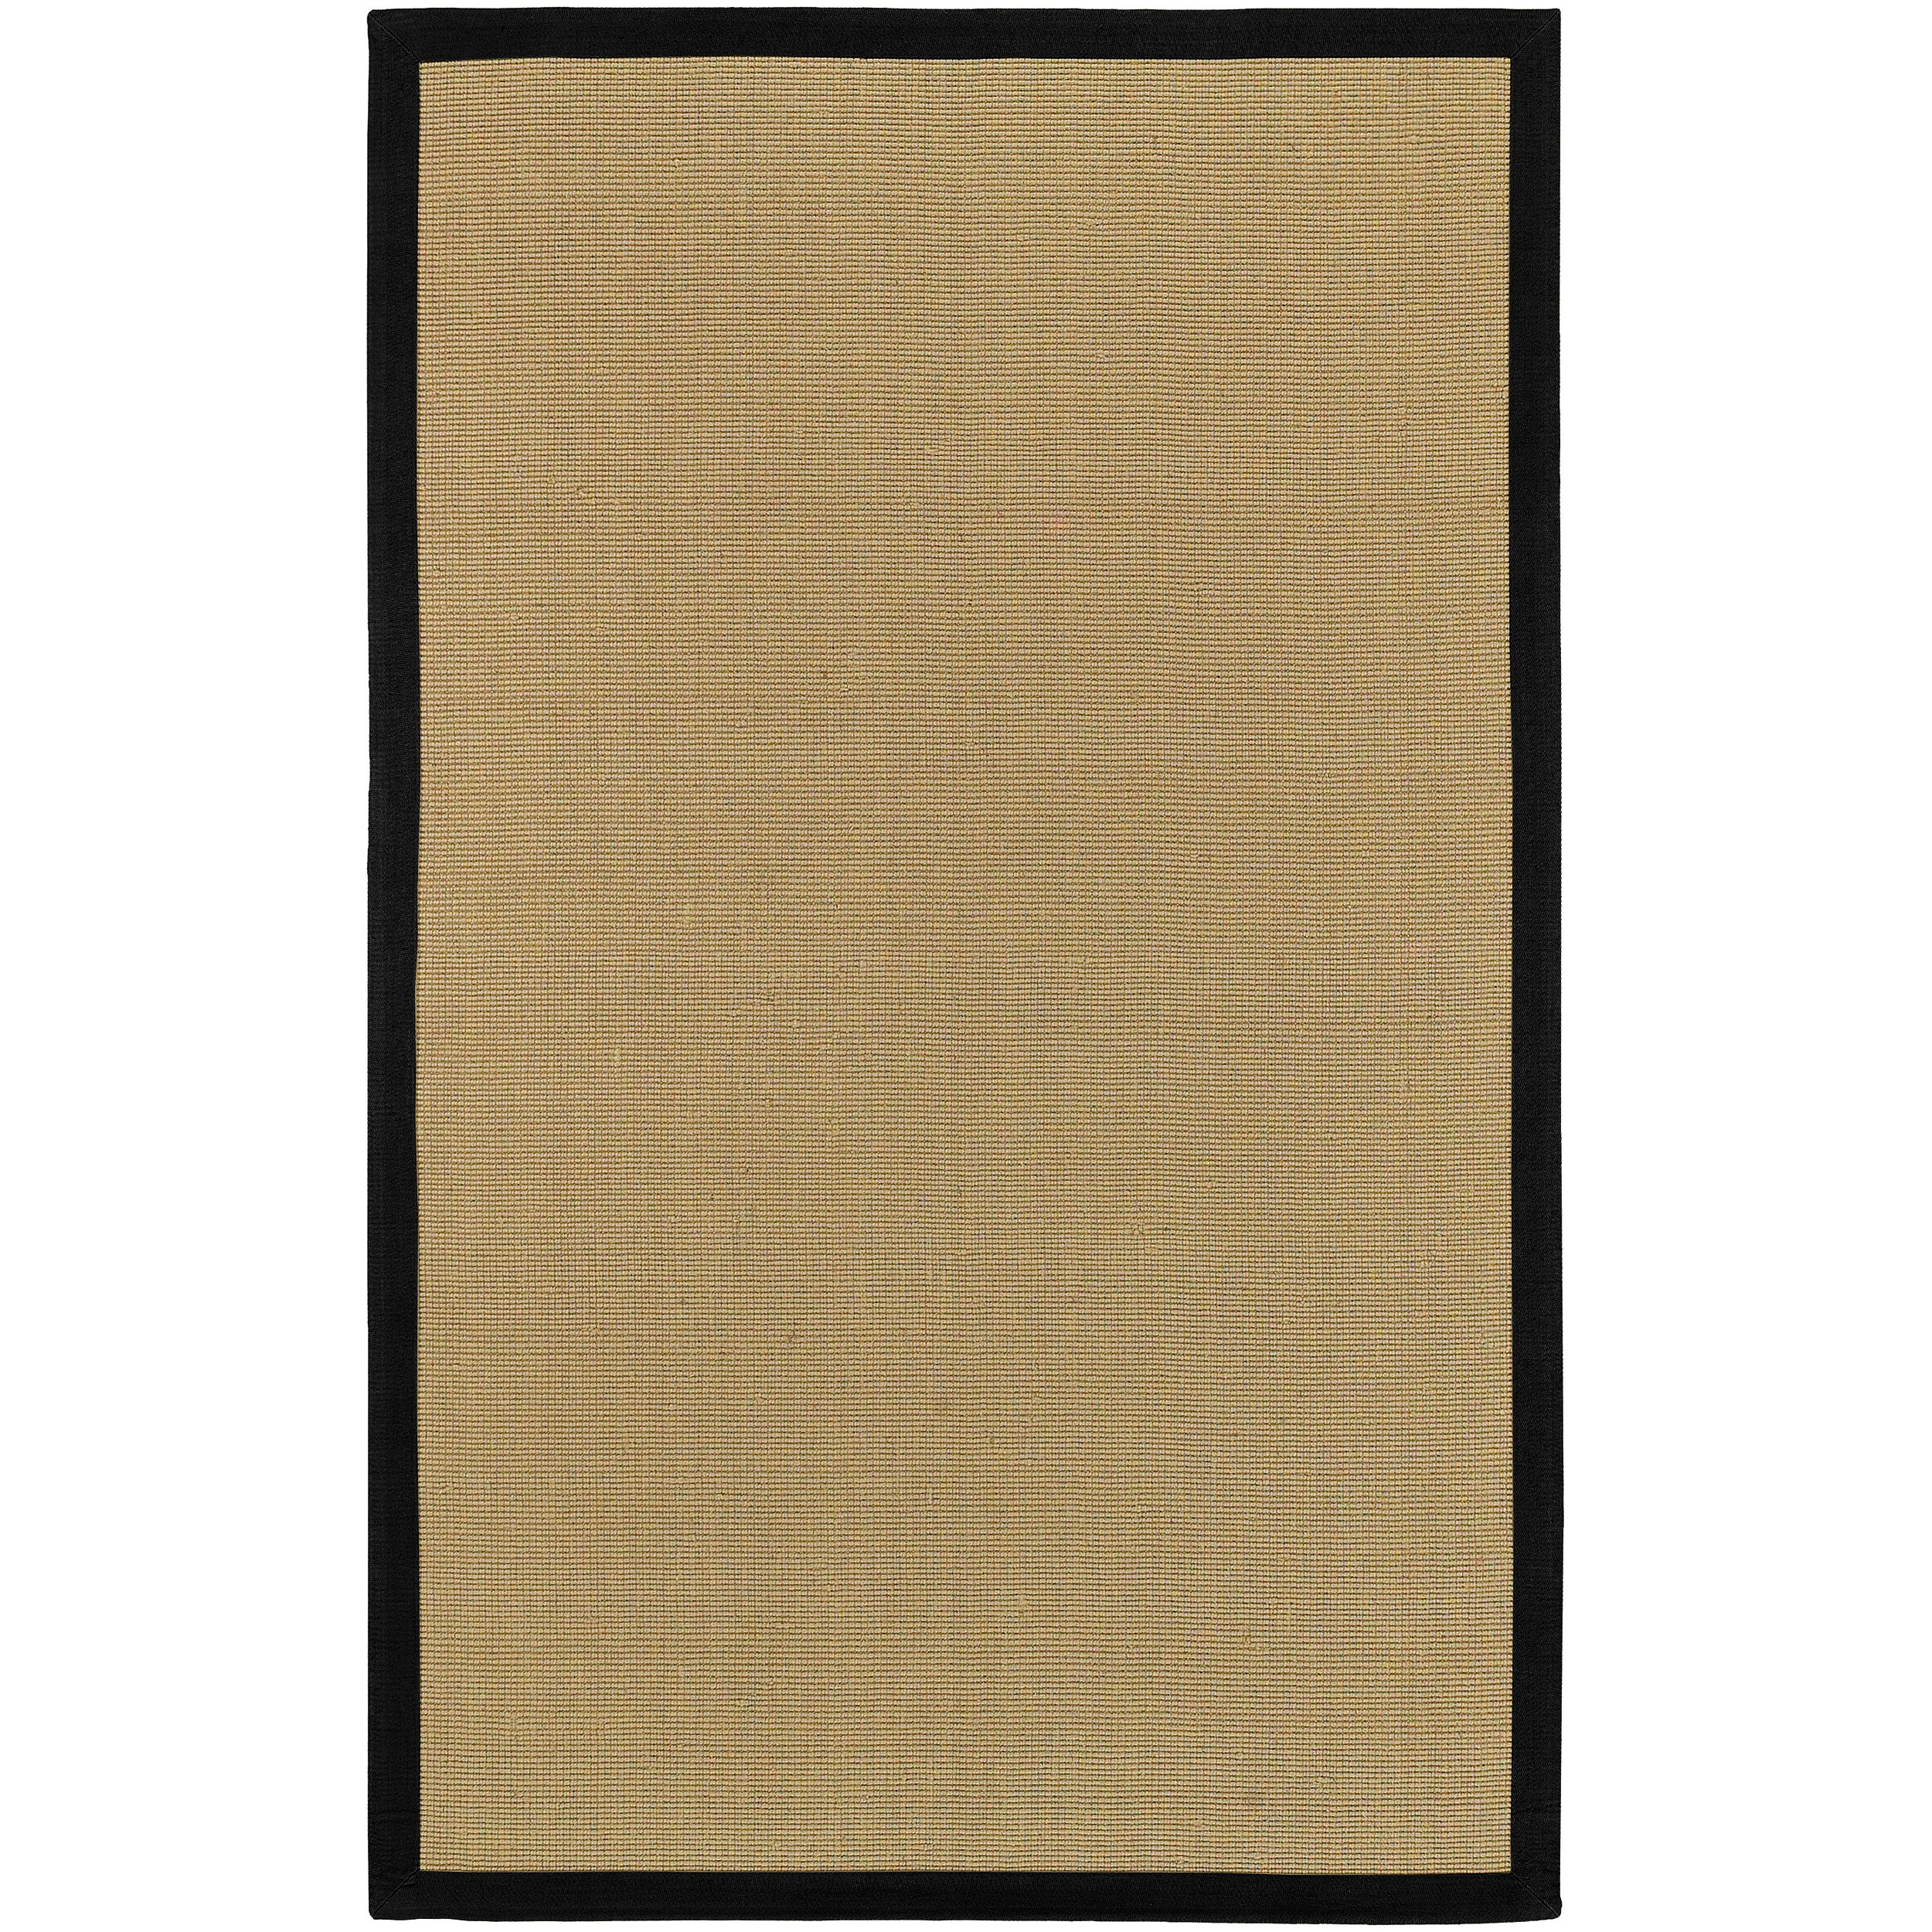 Woven Town Sisal and Black Cotton Border Rug (6' x 9')